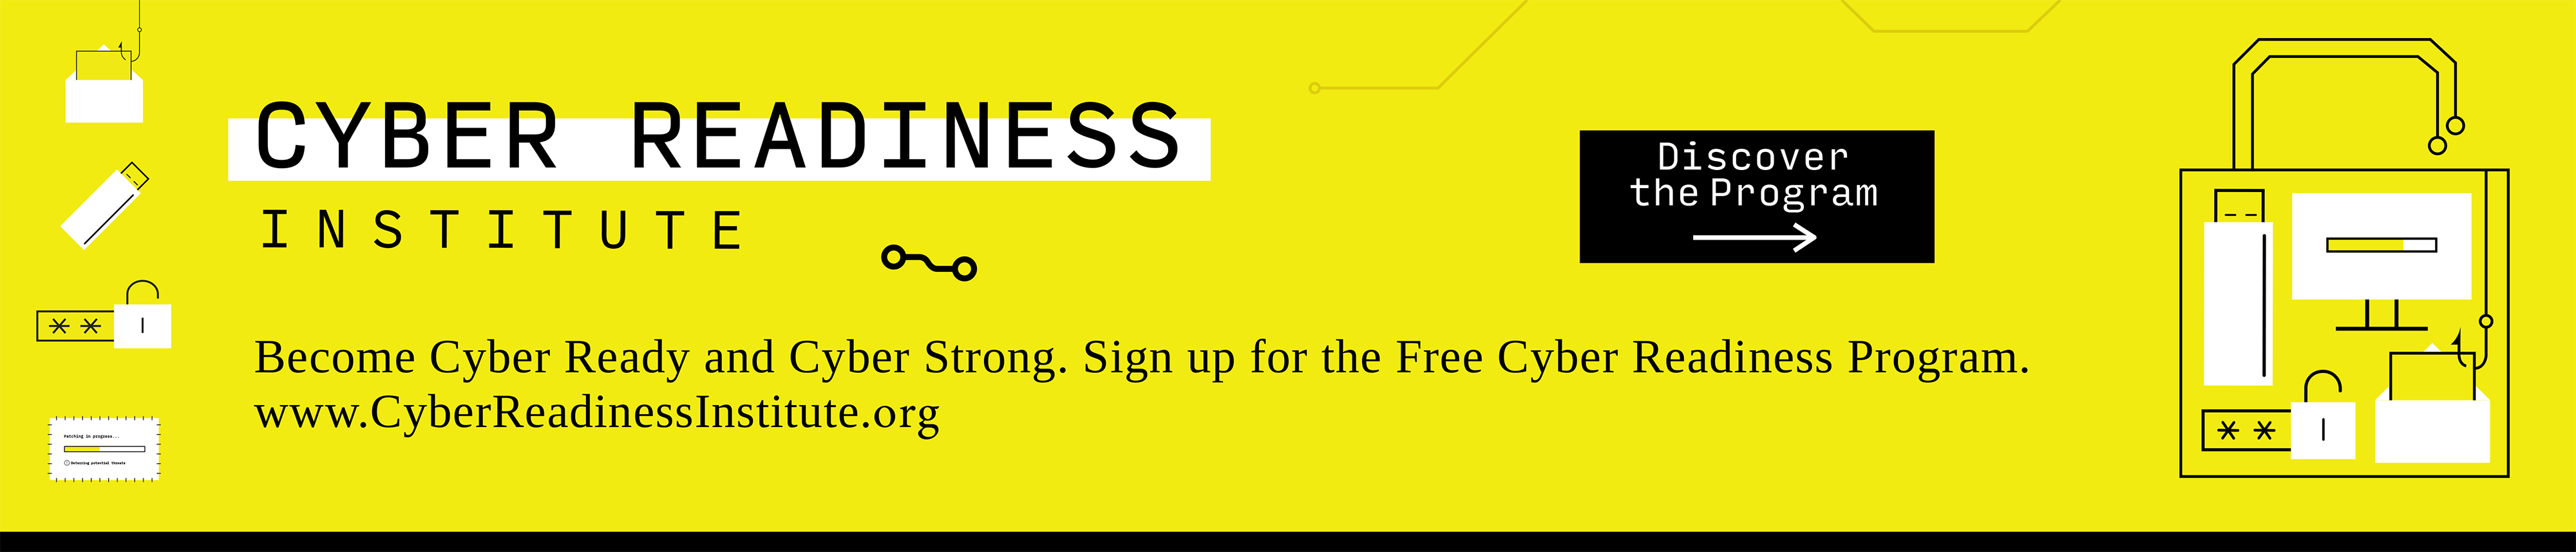 Cyber Readiness Institute (USA)